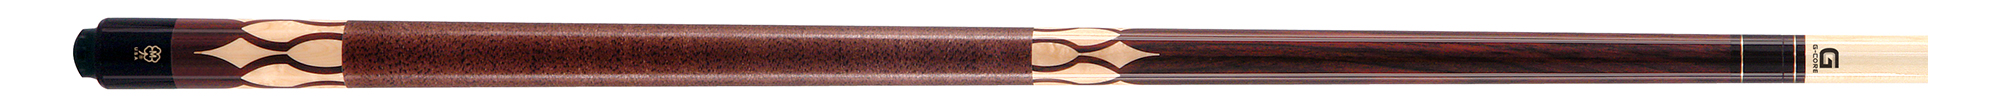 PK3042: McDermott G401 Rosewood/inlay pool #1